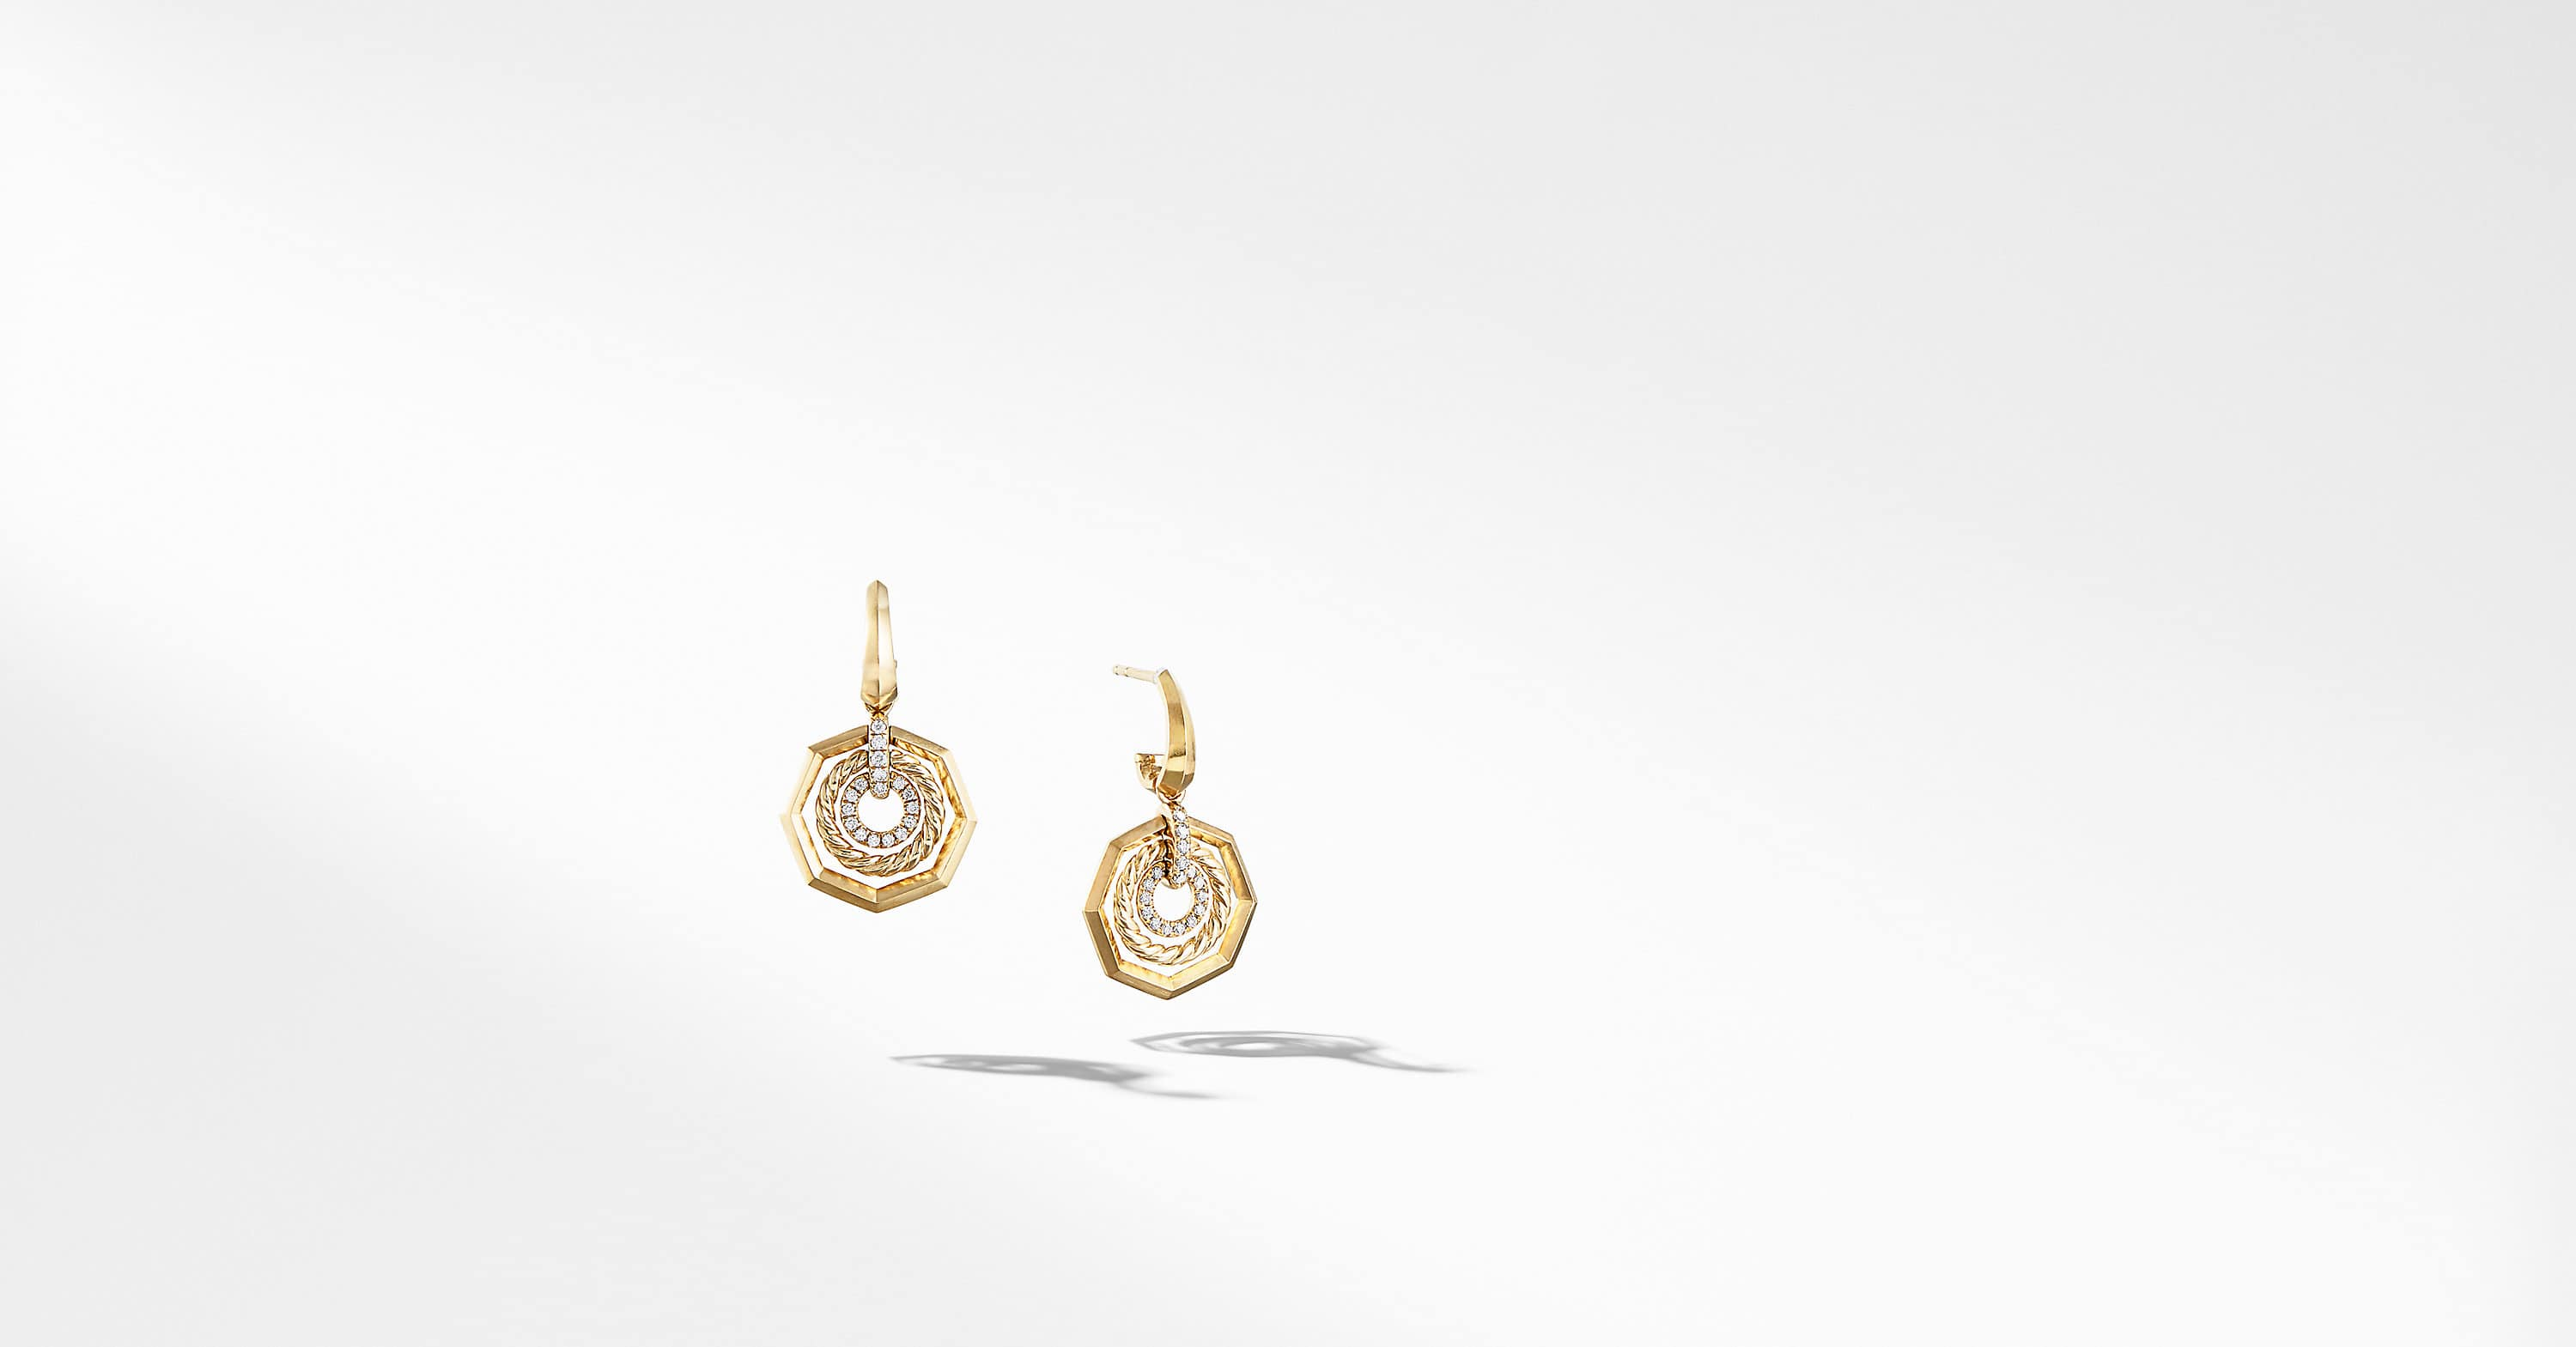 Stax Drop Earring in 18K Yellow Gold with Diamonds